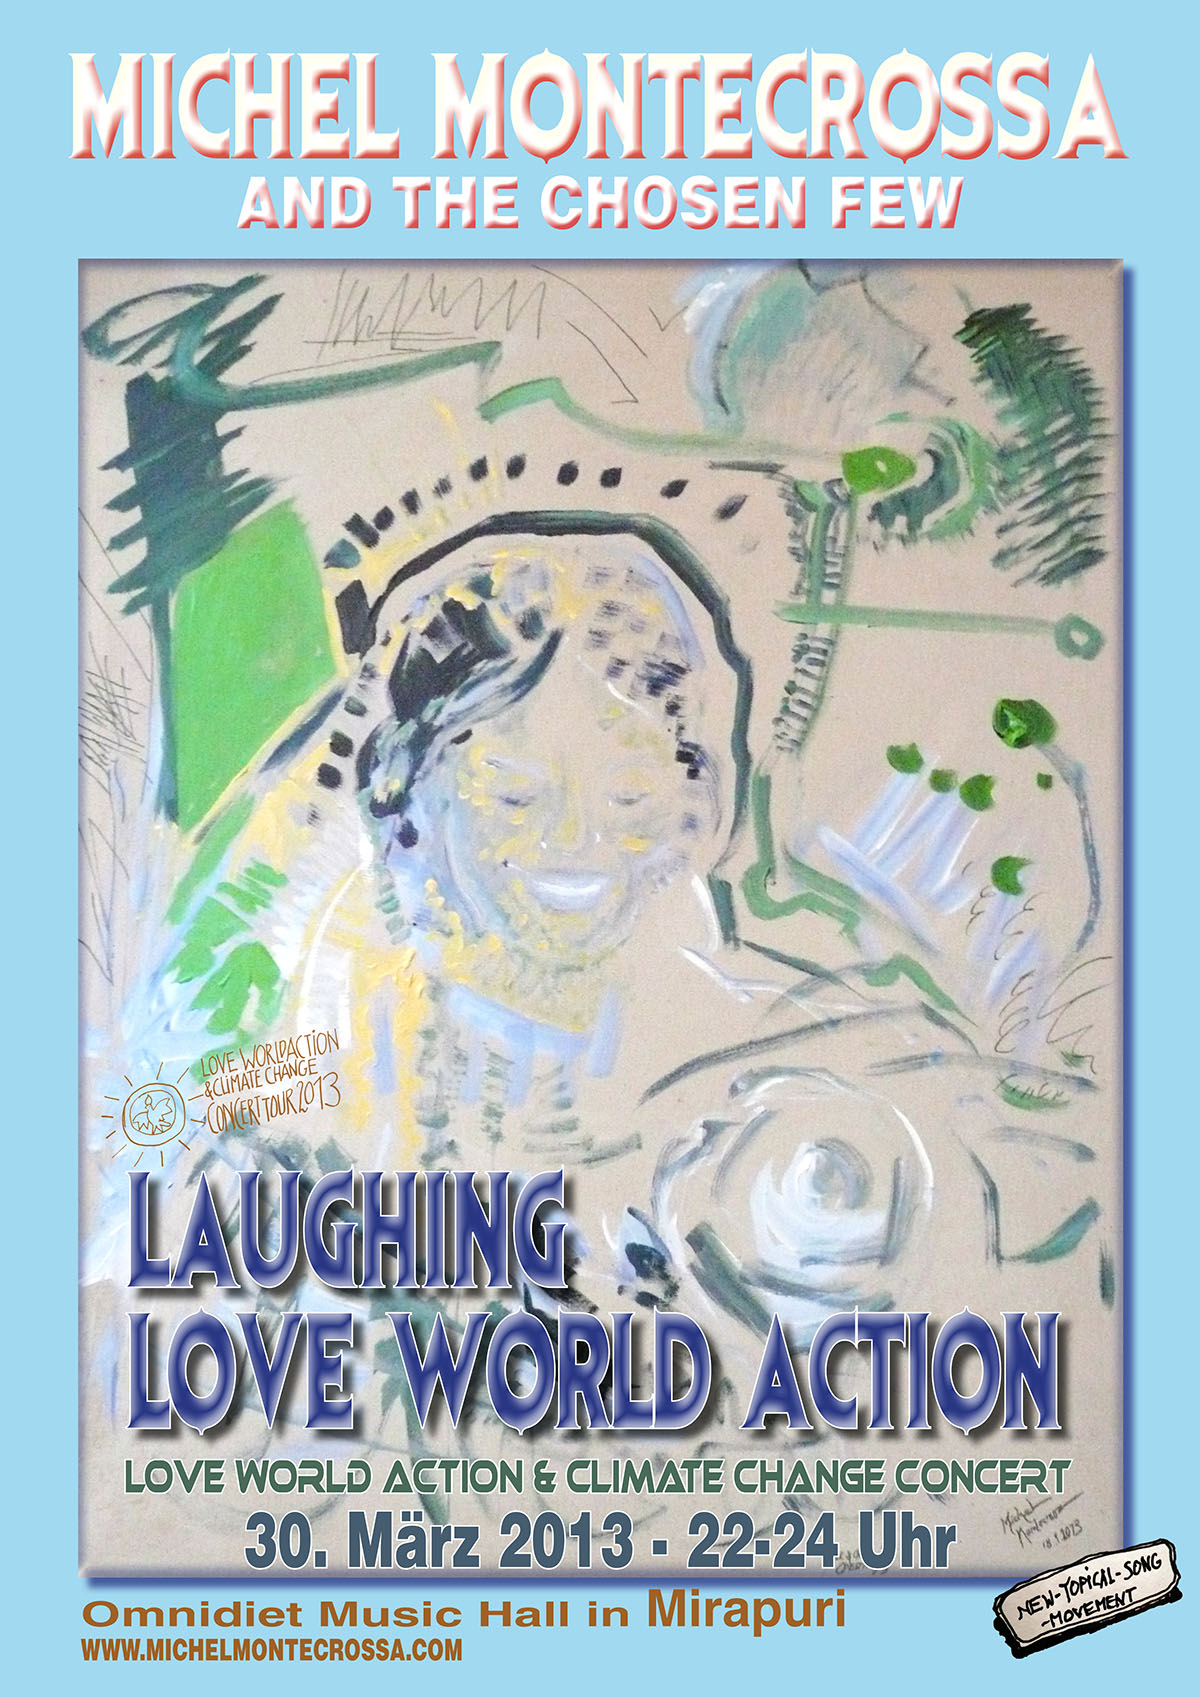 Laughing Love World Action Concert